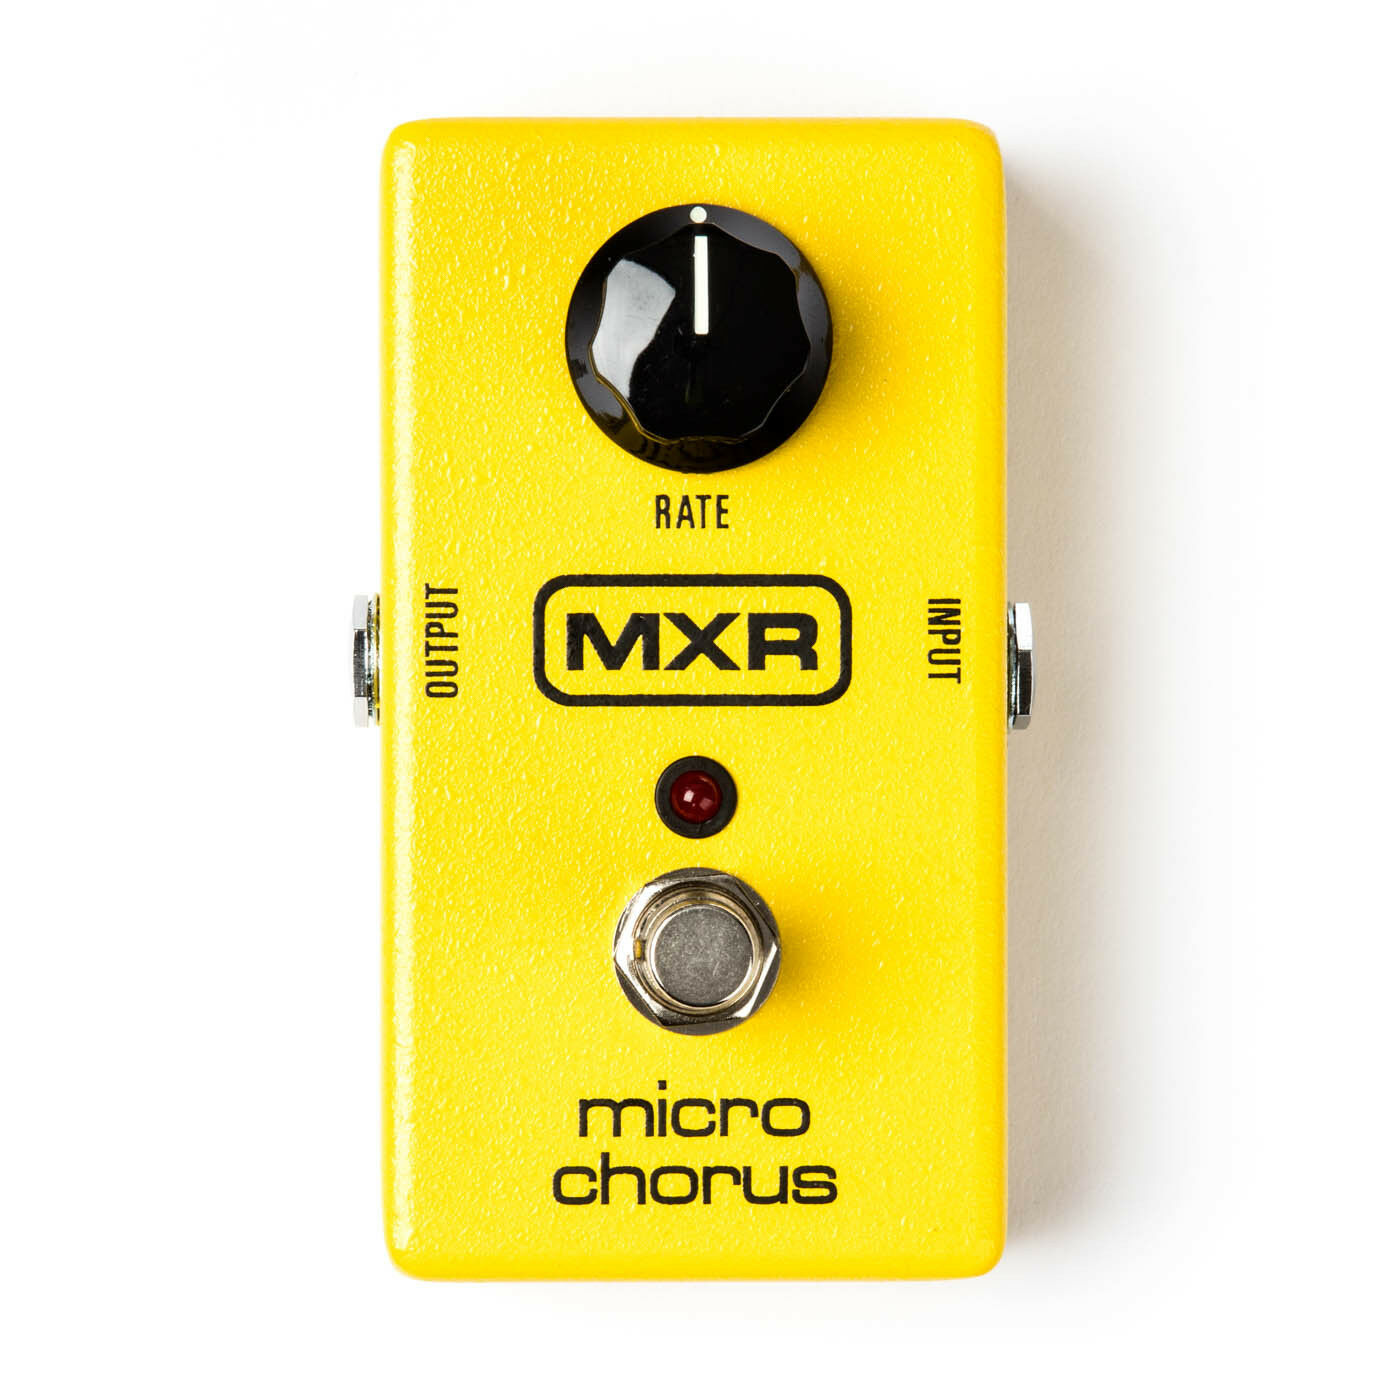 MXR MICRO CHORUS M148 Pedal, Brand New in Box